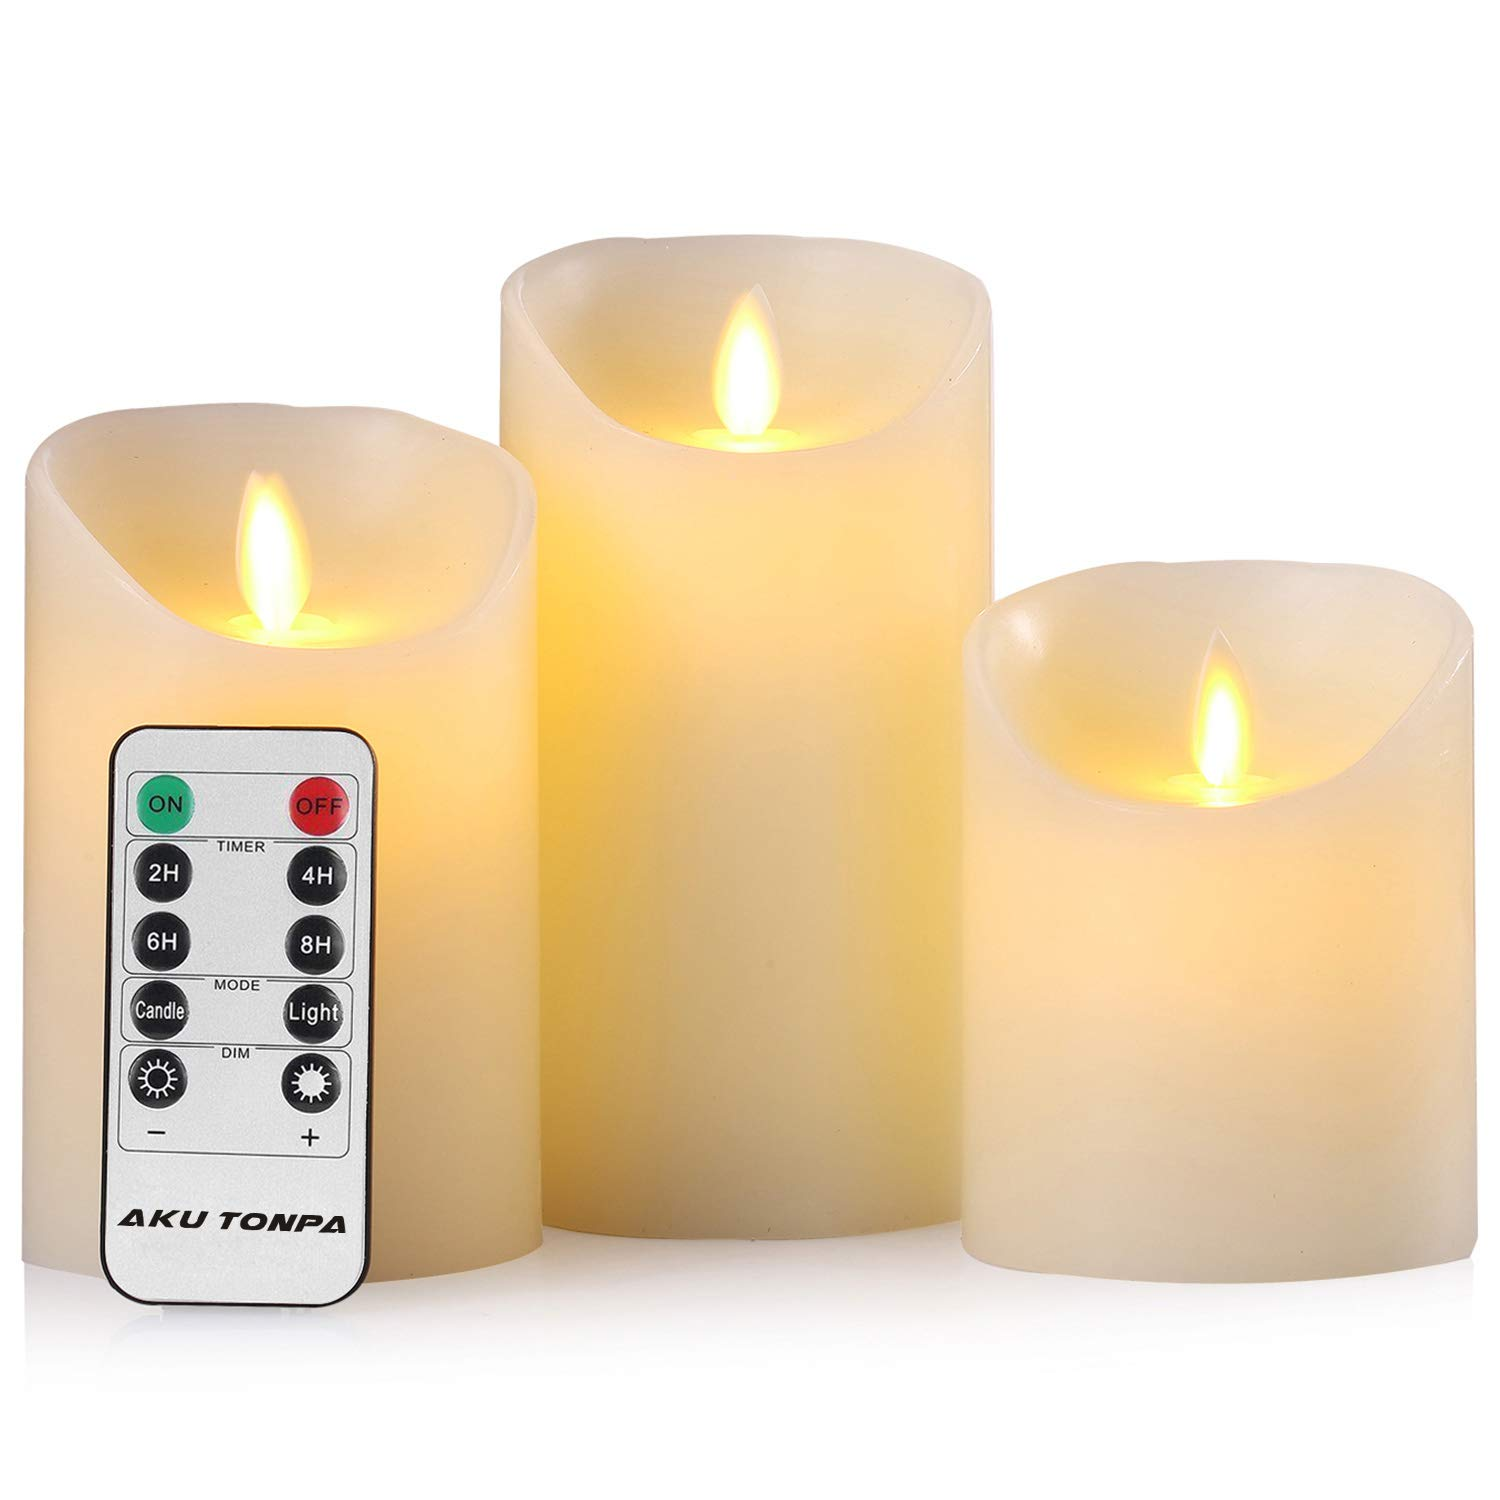 Aku Tonpa Flameless Candles Battery Operated Pillar Real Wax Flickering Moving Wick Electric LED Candle Sets with Remote Control Cycling 24 Hours Timer, 4'' 5'' 6'' Pack of 3